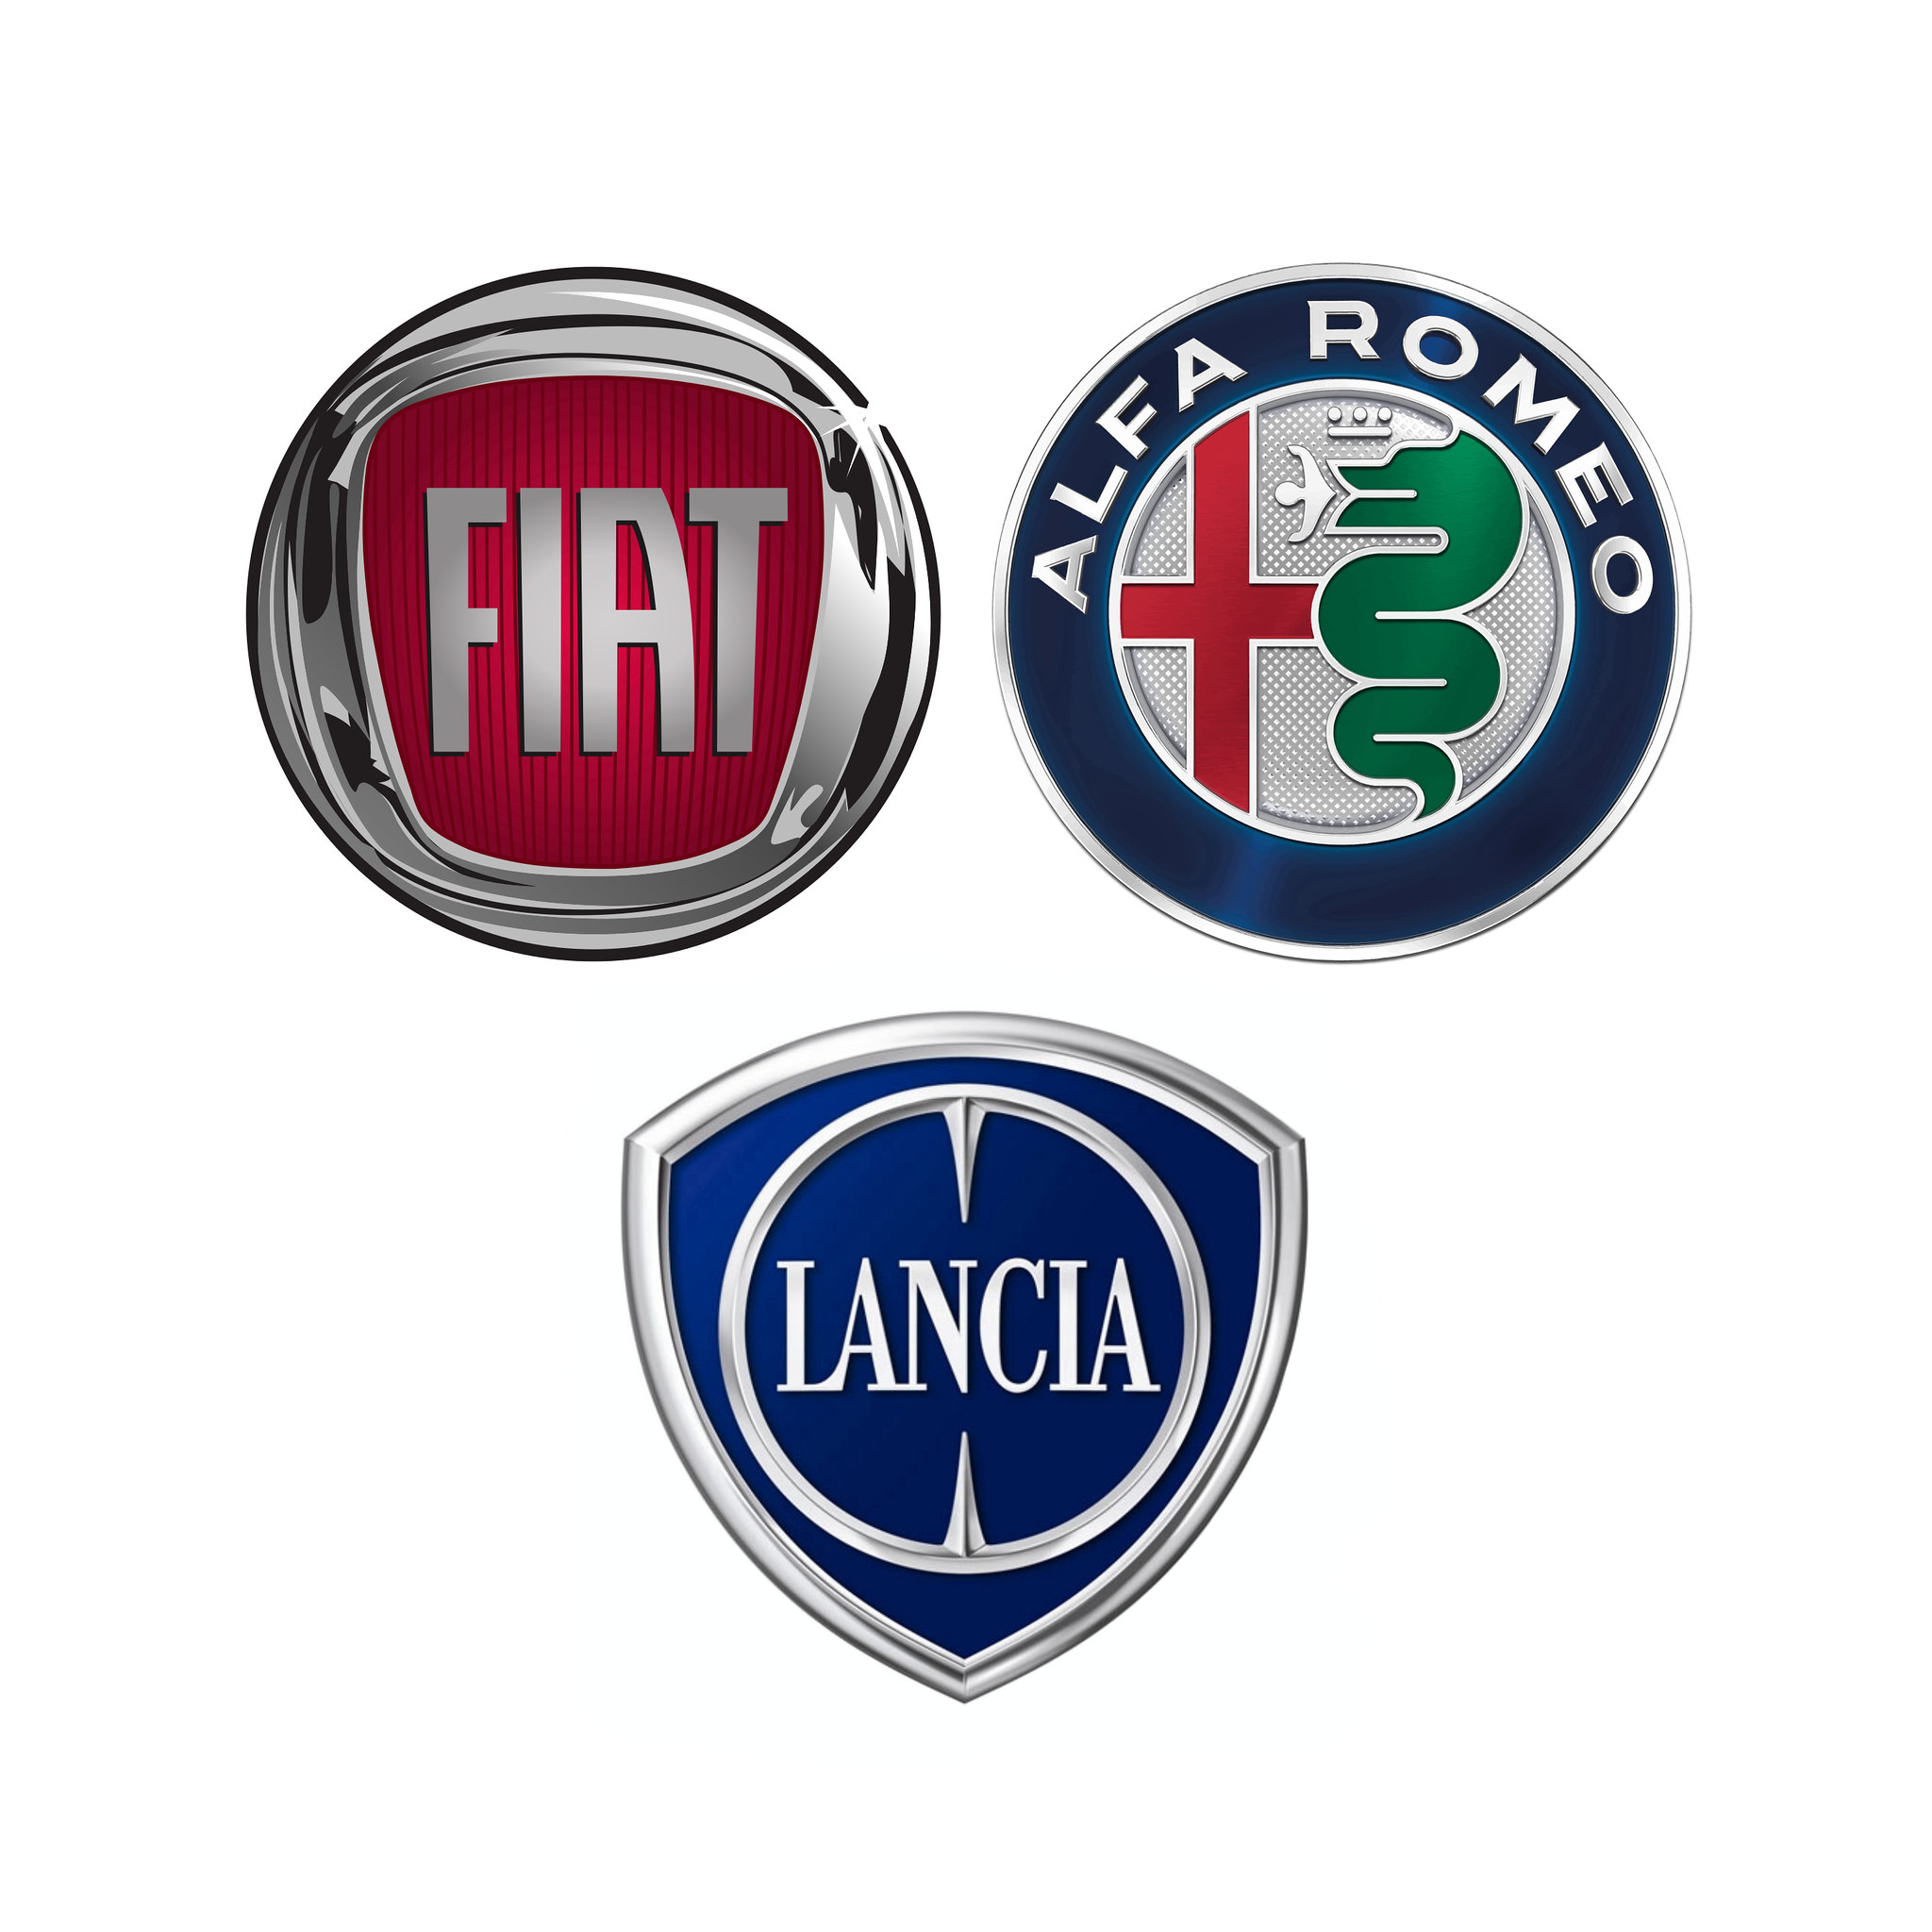 frieze logo emblem fiat rear for punto evo grande punto 735578840 ebay. Black Bedroom Furniture Sets. Home Design Ideas